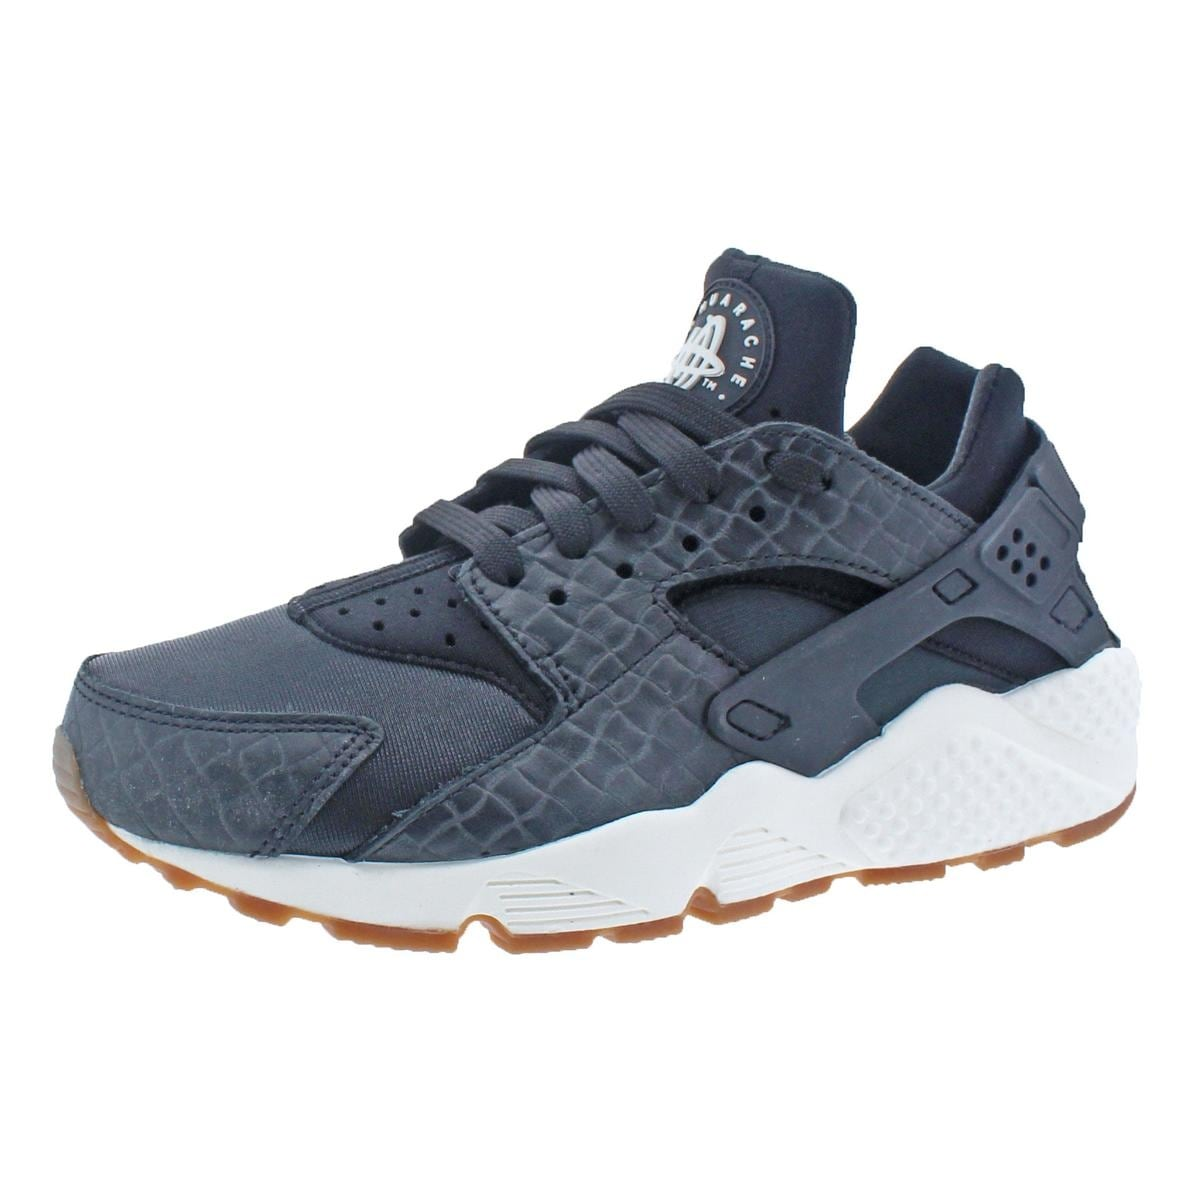 multiple colors new product top brands netherlands nike huarache catalina guld 4a352 1941a